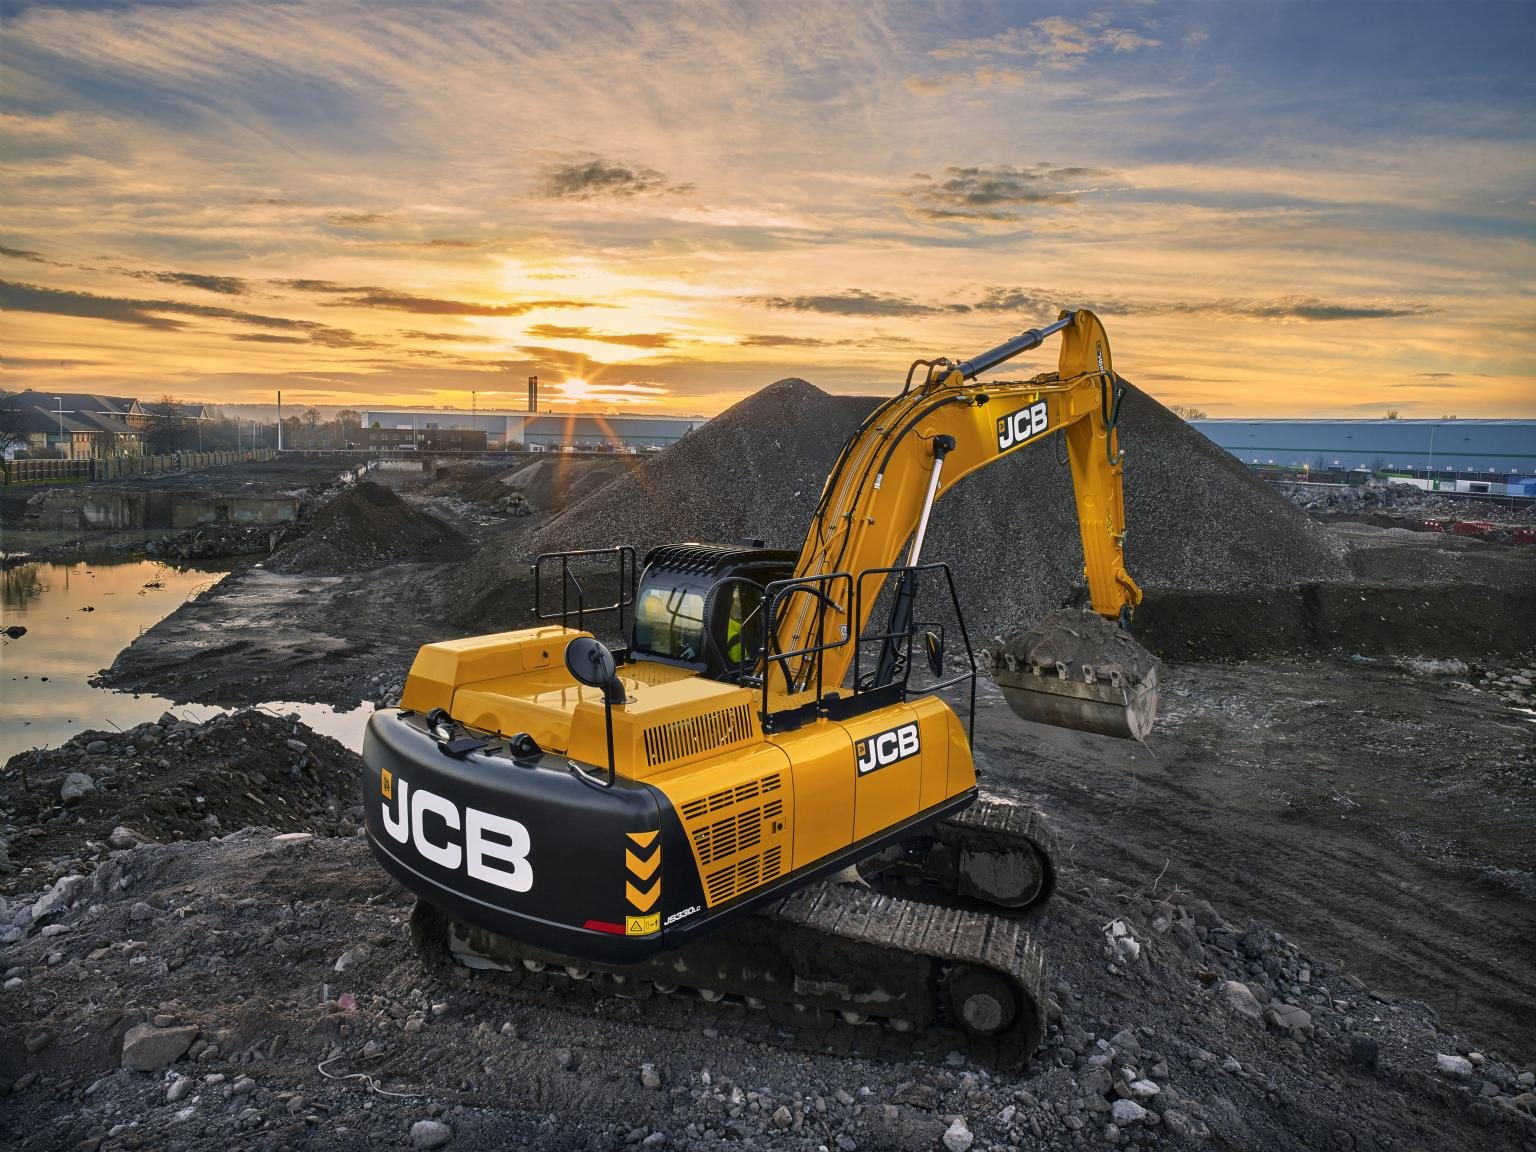 JCB is focussing its R&D efforts on operator and pedestrian safety